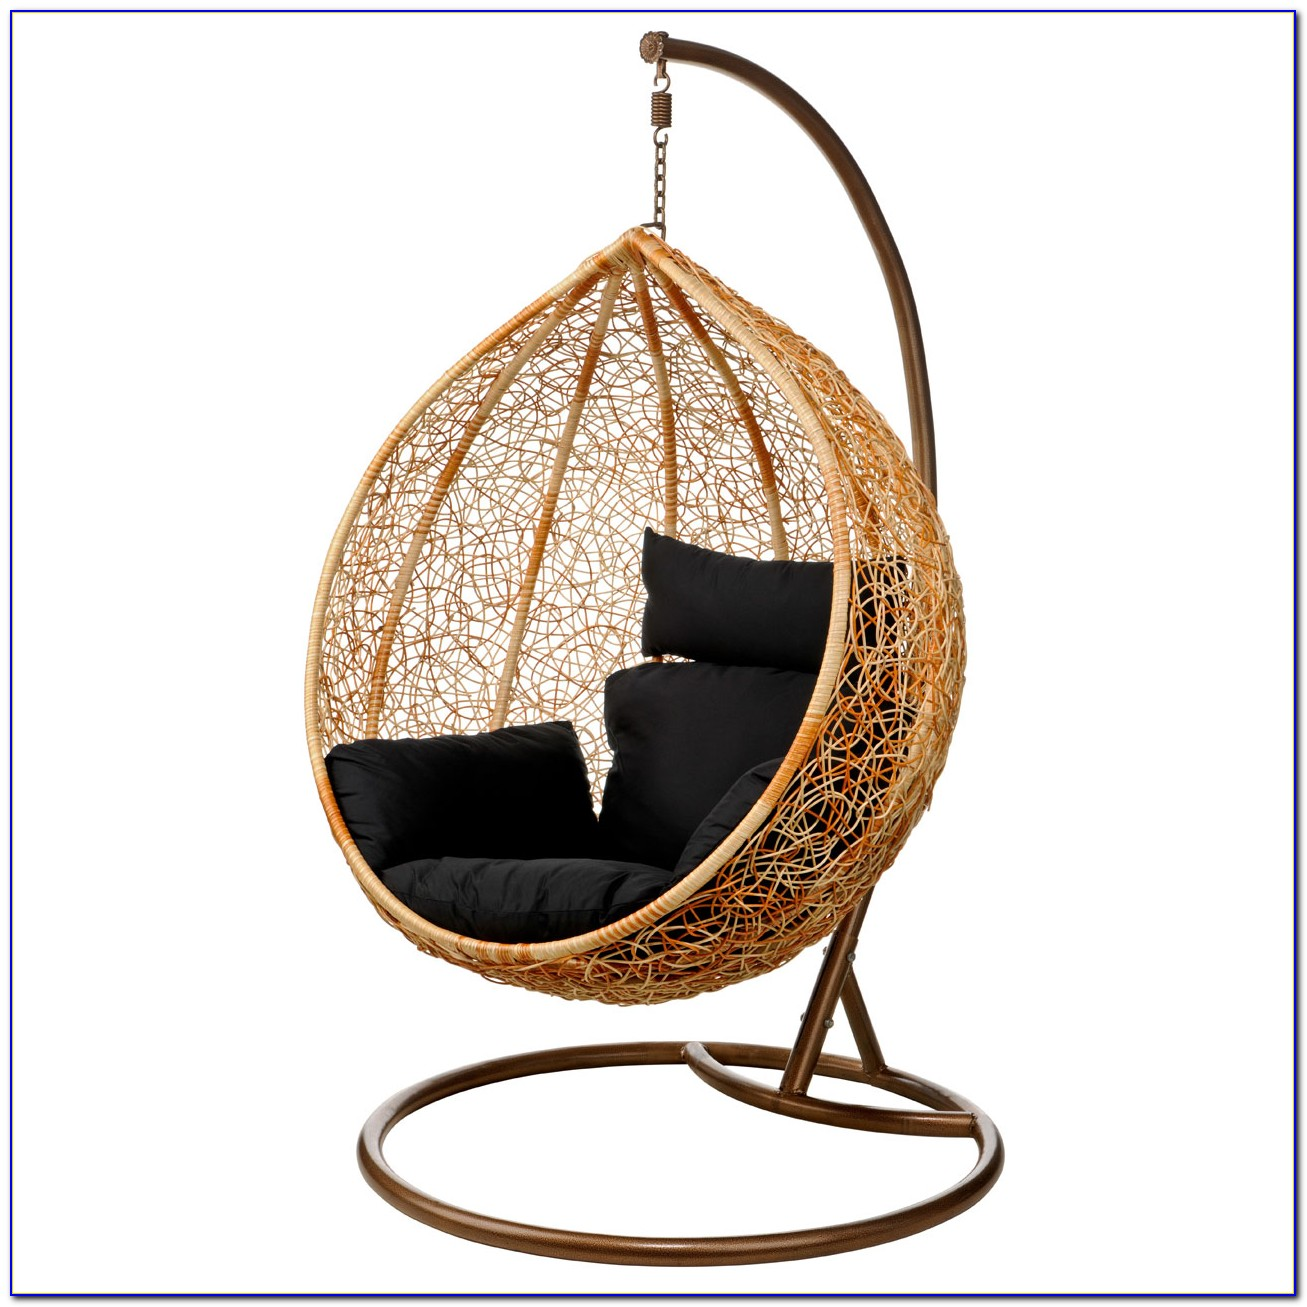 Hanging Rattan Chair Pier 1